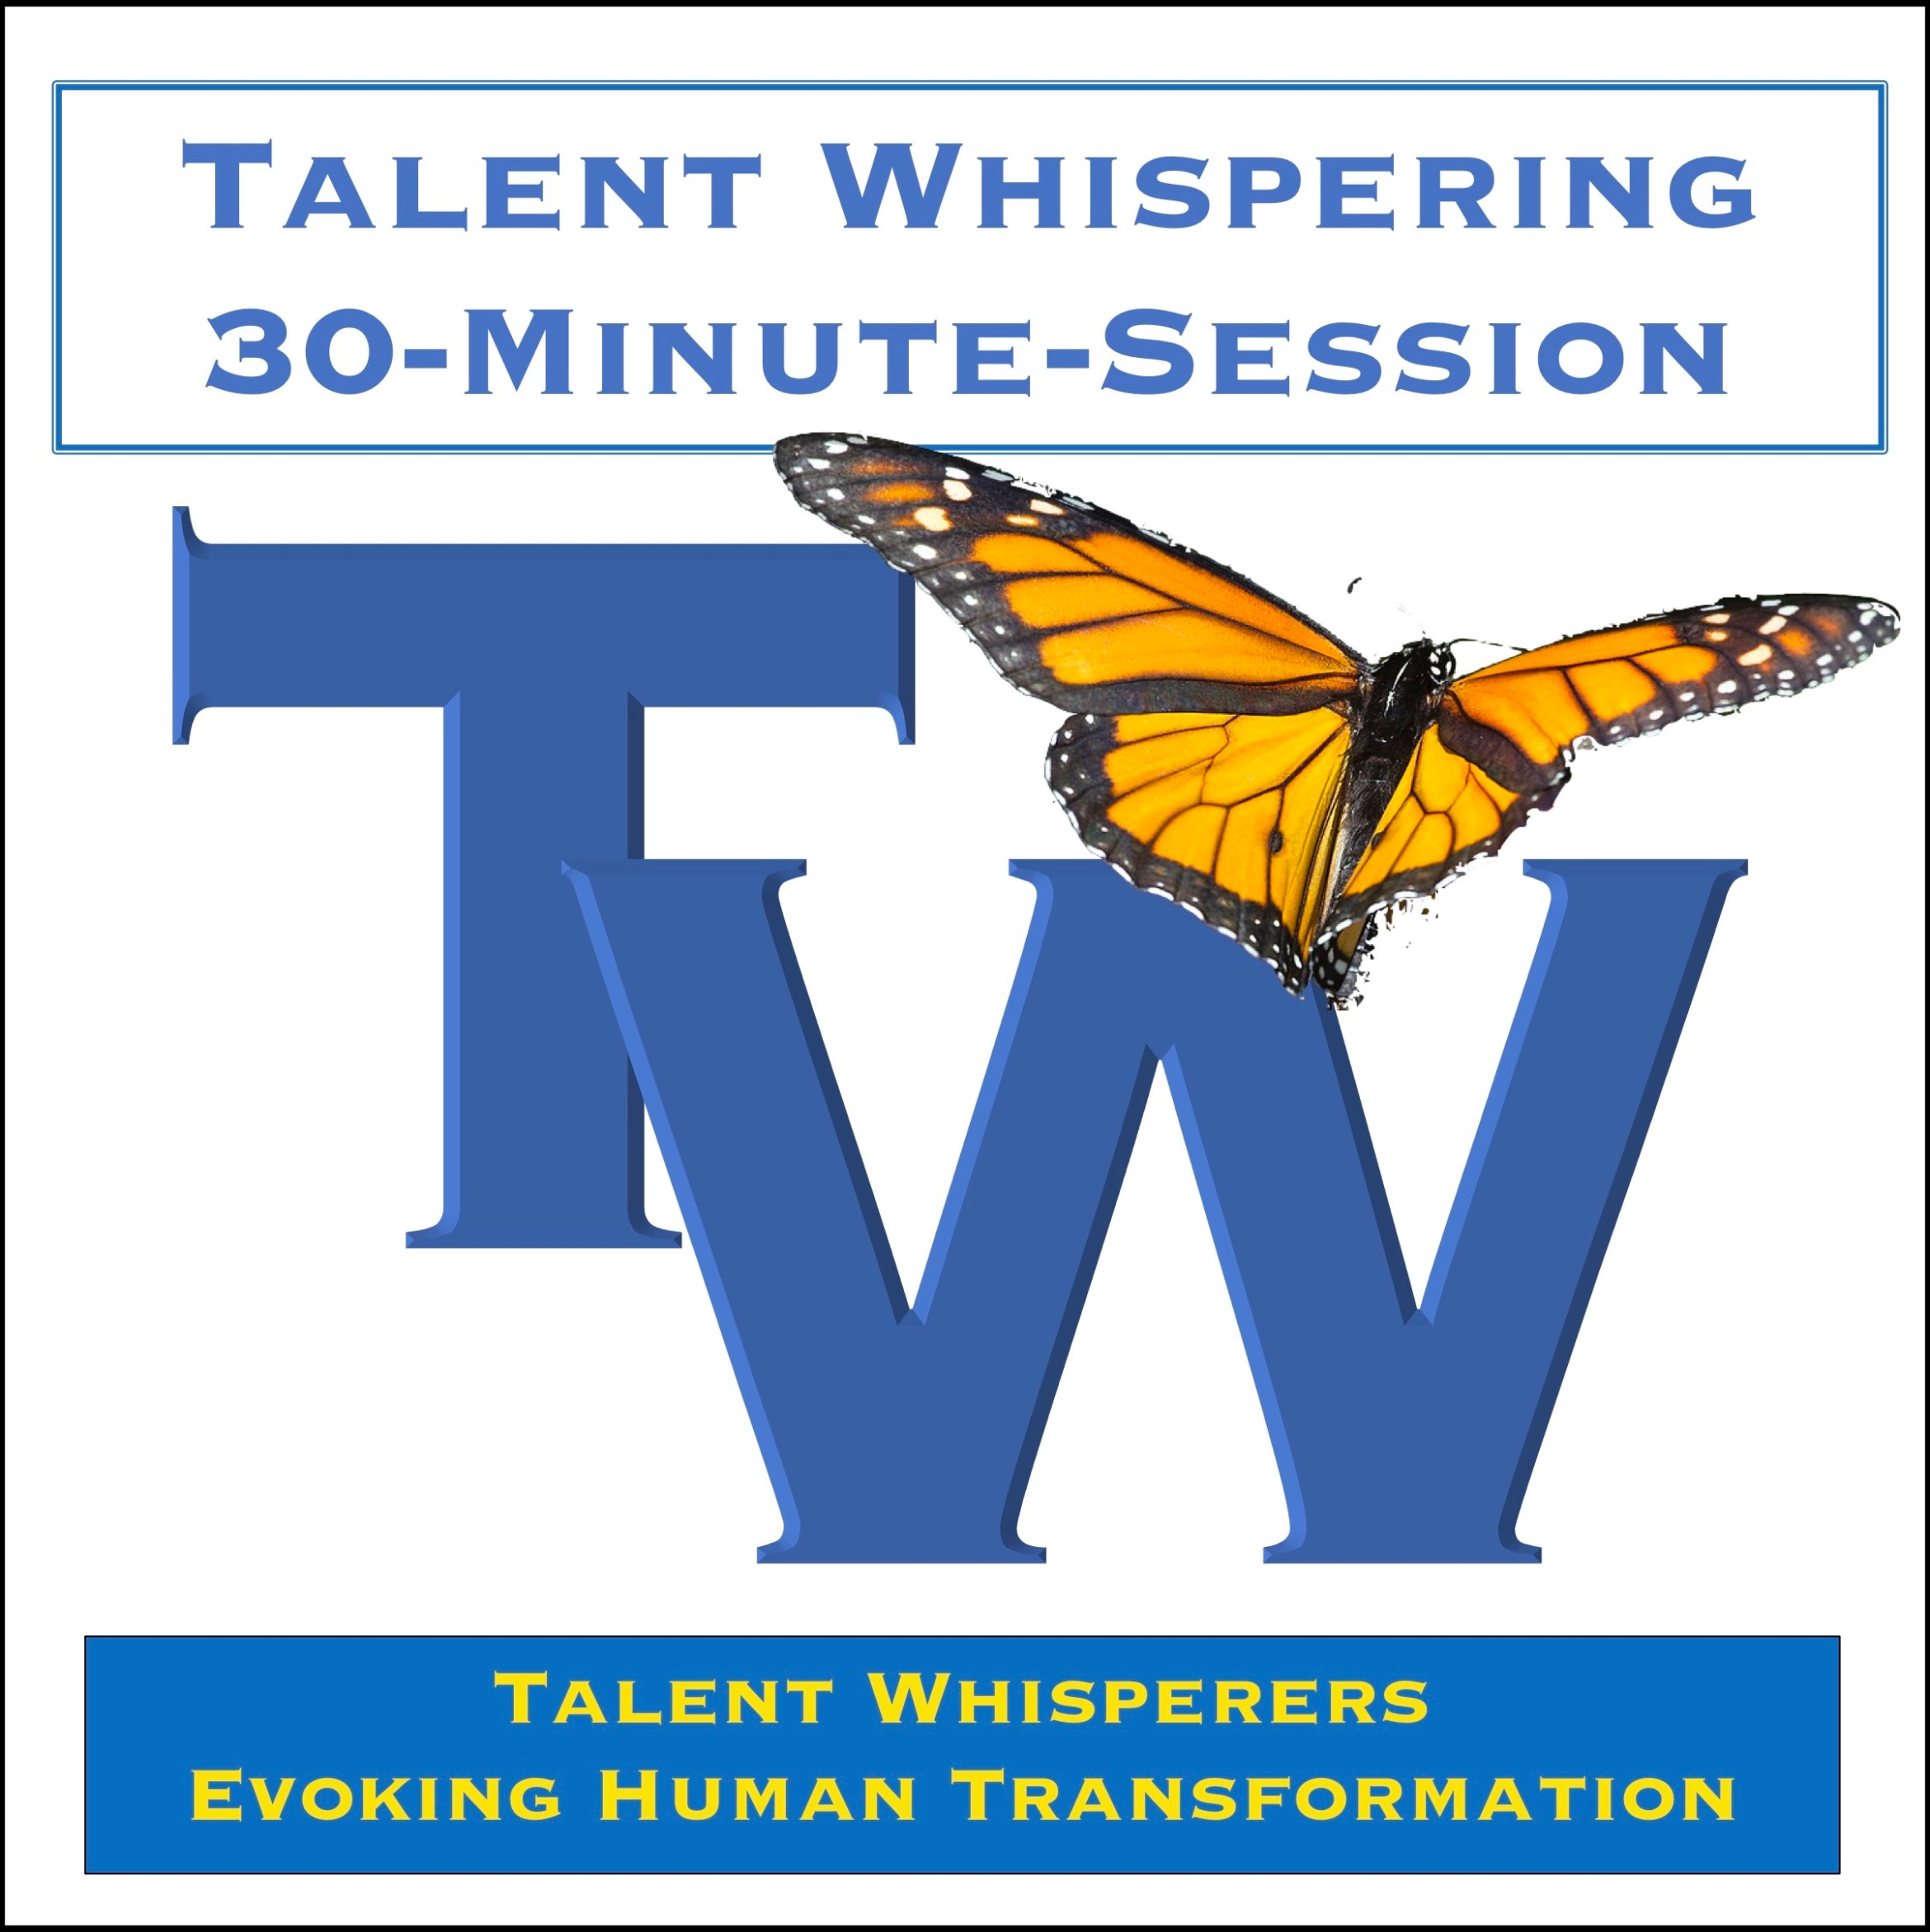 Talent-Whispering-30-minute-session